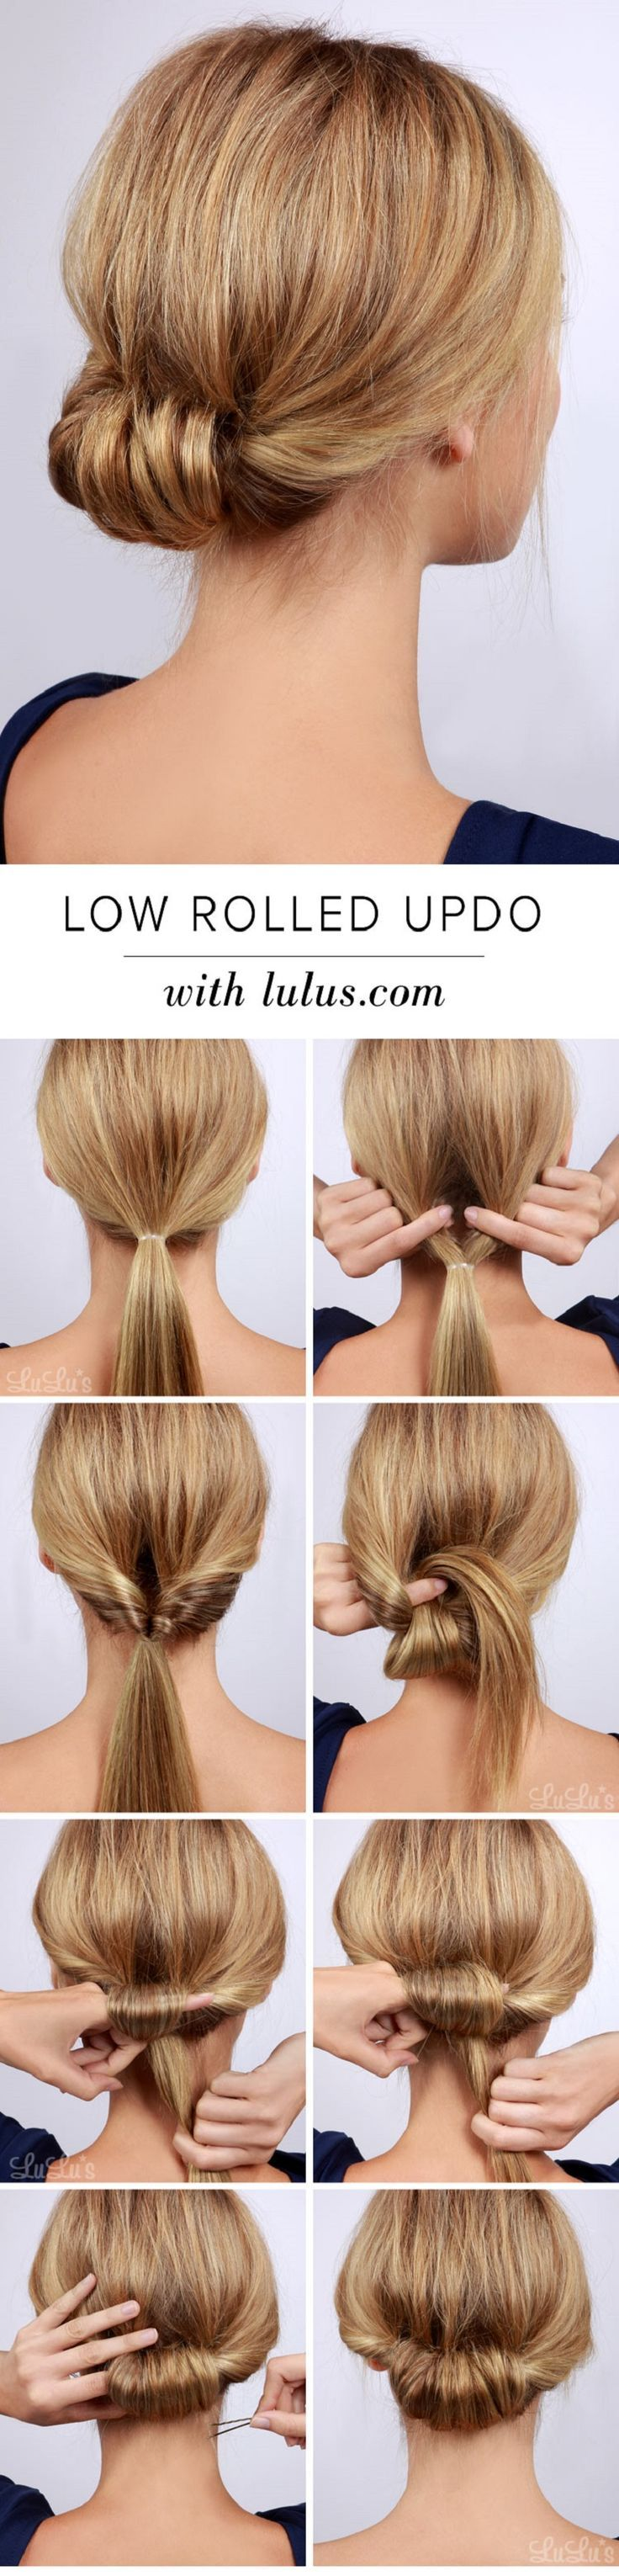 celebrityinspired hairstyles you must learn low rolled updo